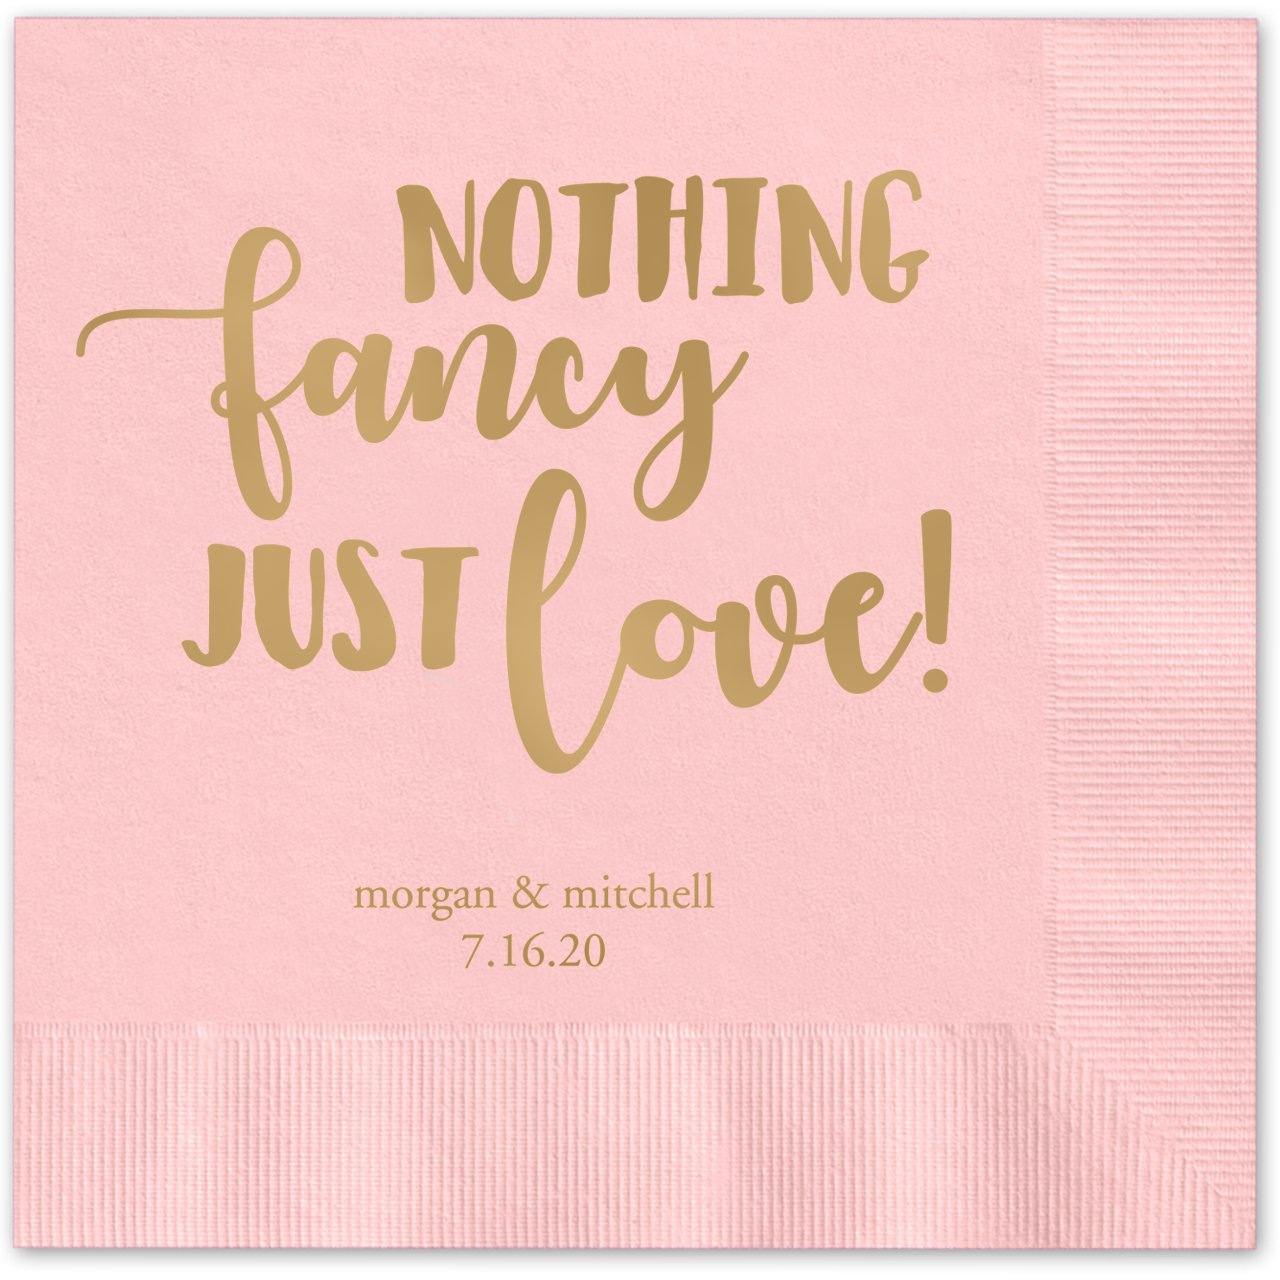 Nothing Fancy, Just Love Personalized Beverage Cocktail Napkins - 100 Custom Printed Pink Paper Napkins with choice of foil